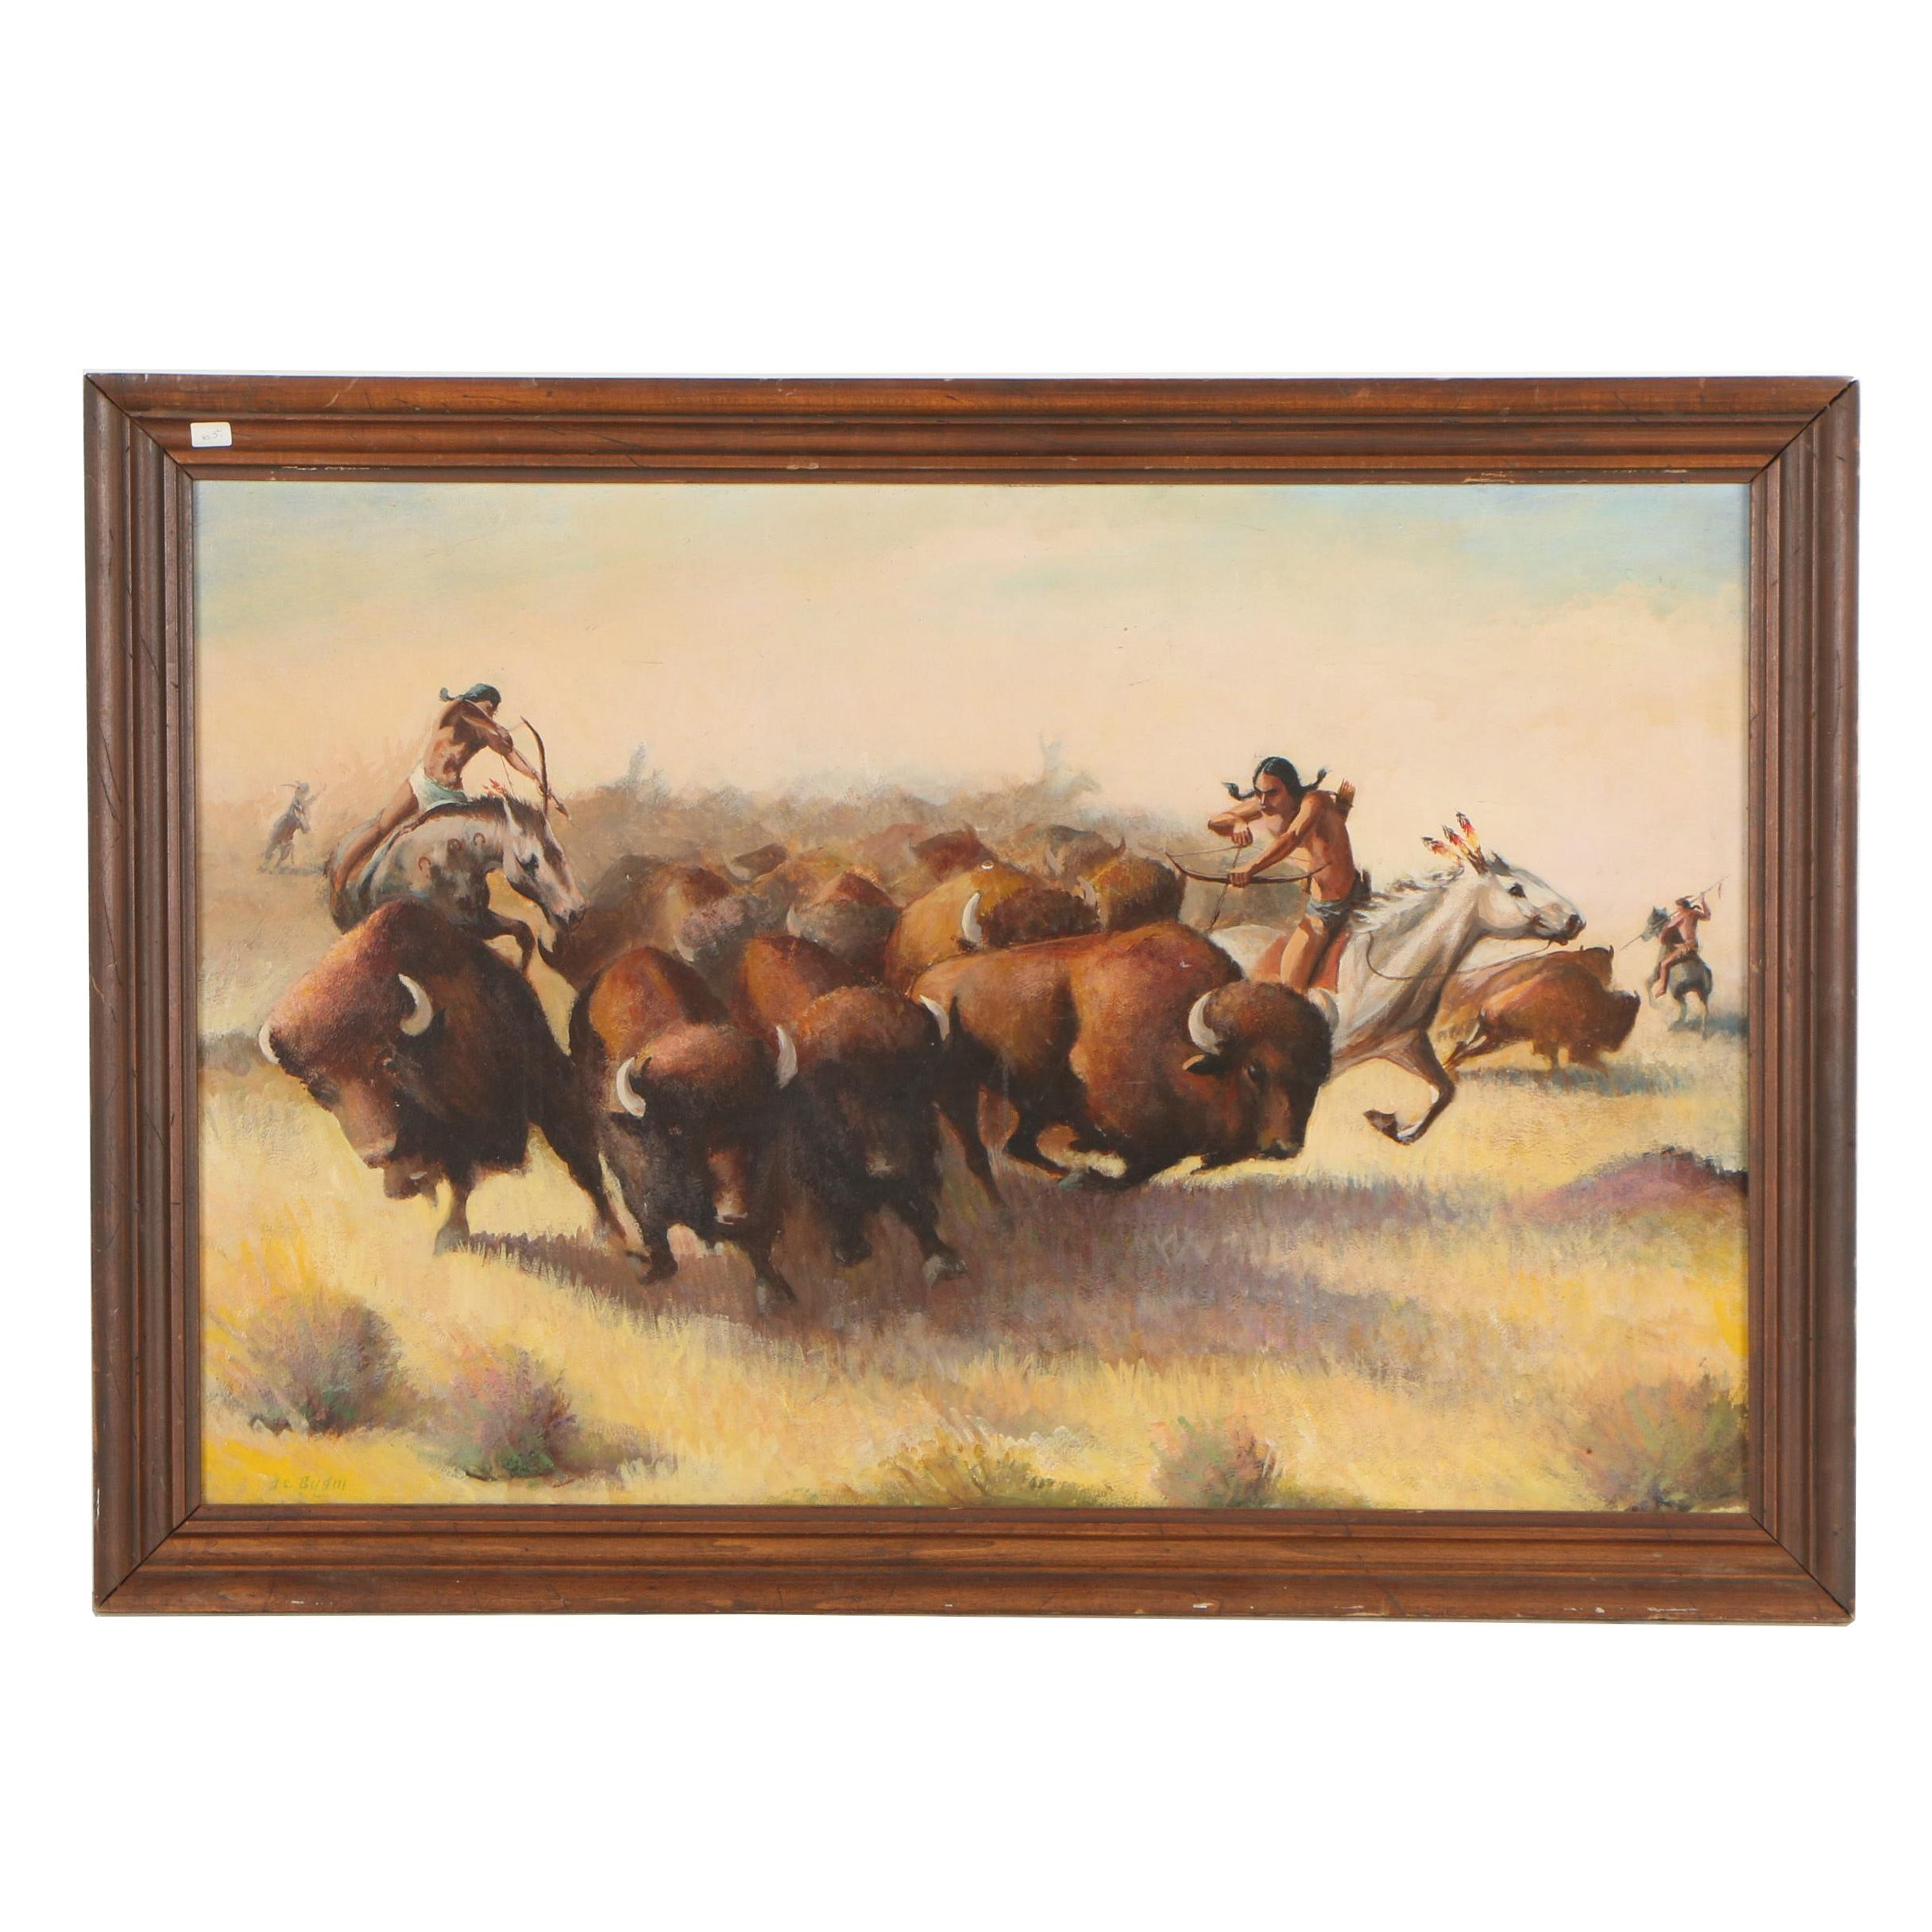 A.C. Byam Oil Painting